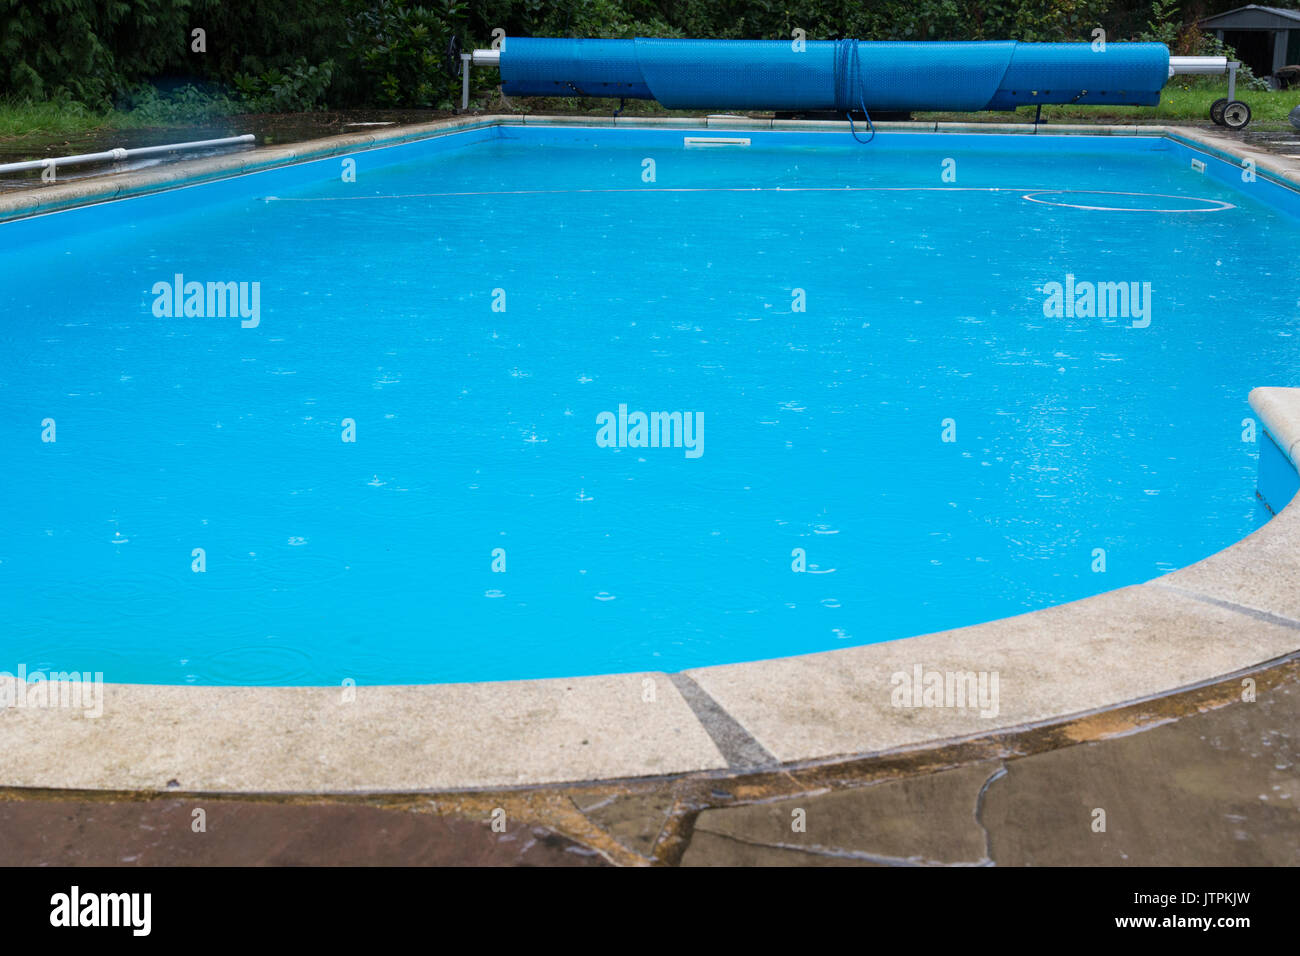 Raindrops Falling into an outdoor swimming pool with blue water - Stock Image